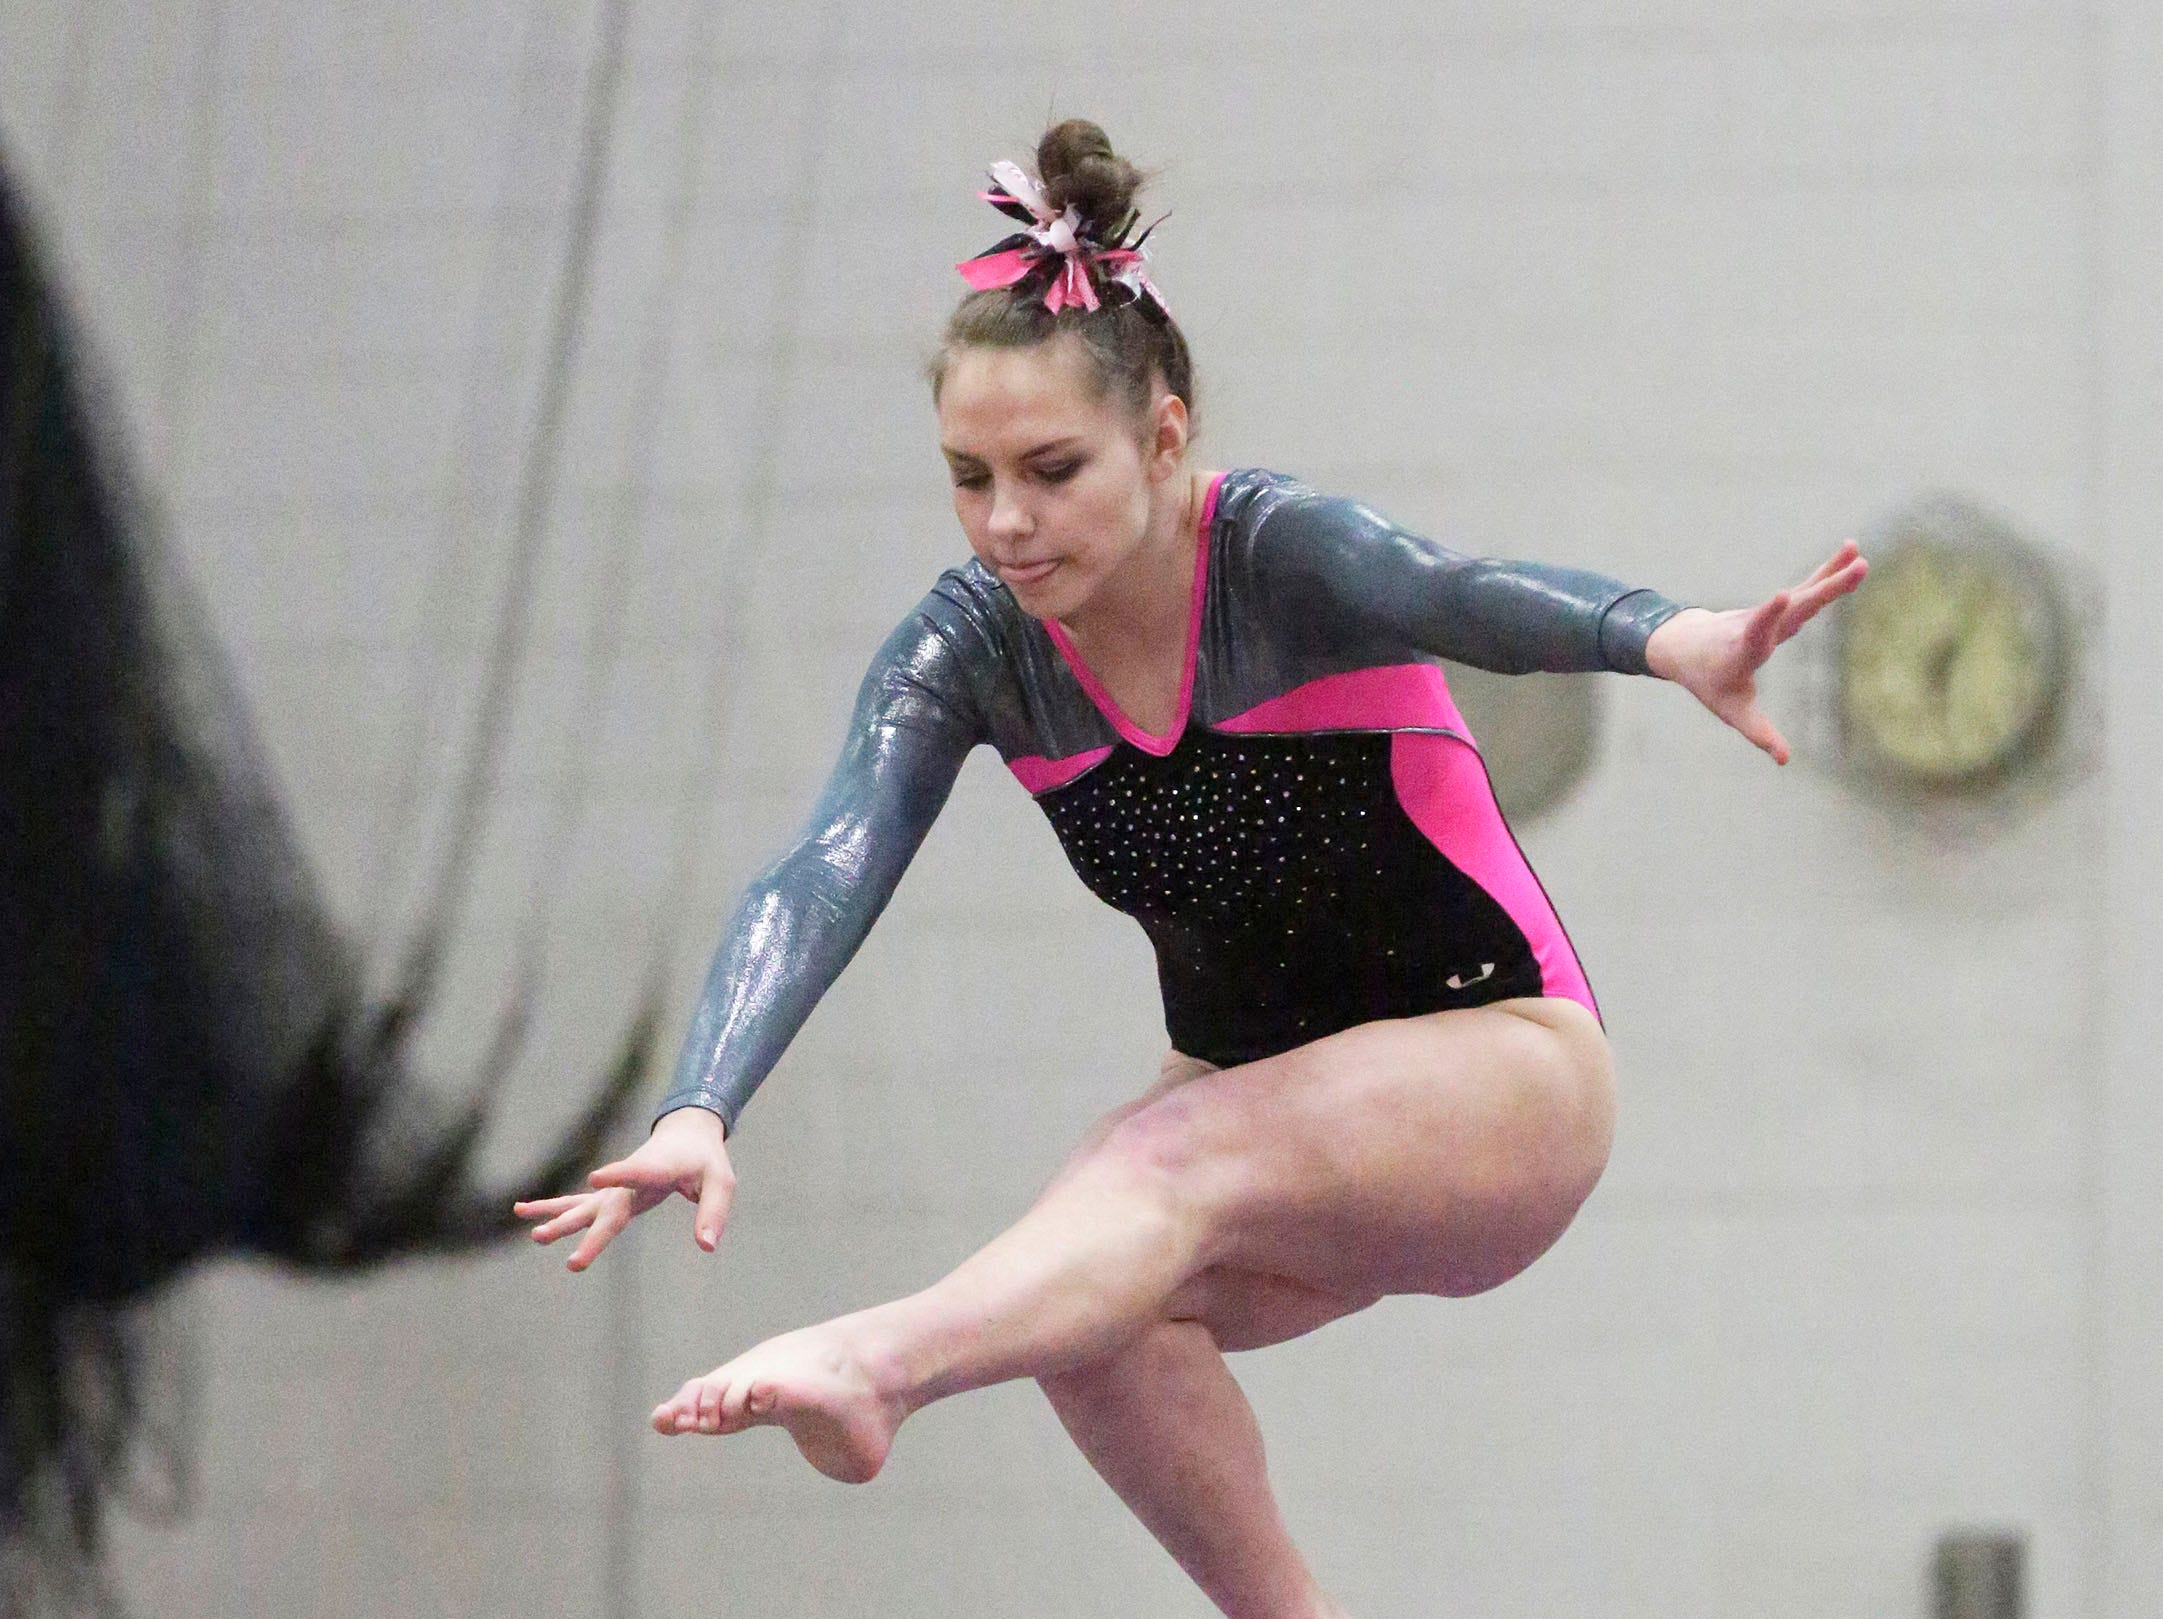 Sheboygan North/South's Maddie Lewis is airborne on the beam during the WIAA Eastern Valley Conference Gymnastics Meet at Sheboygan South, Friday, February 15, 2019, in Sheboygan, Wis.